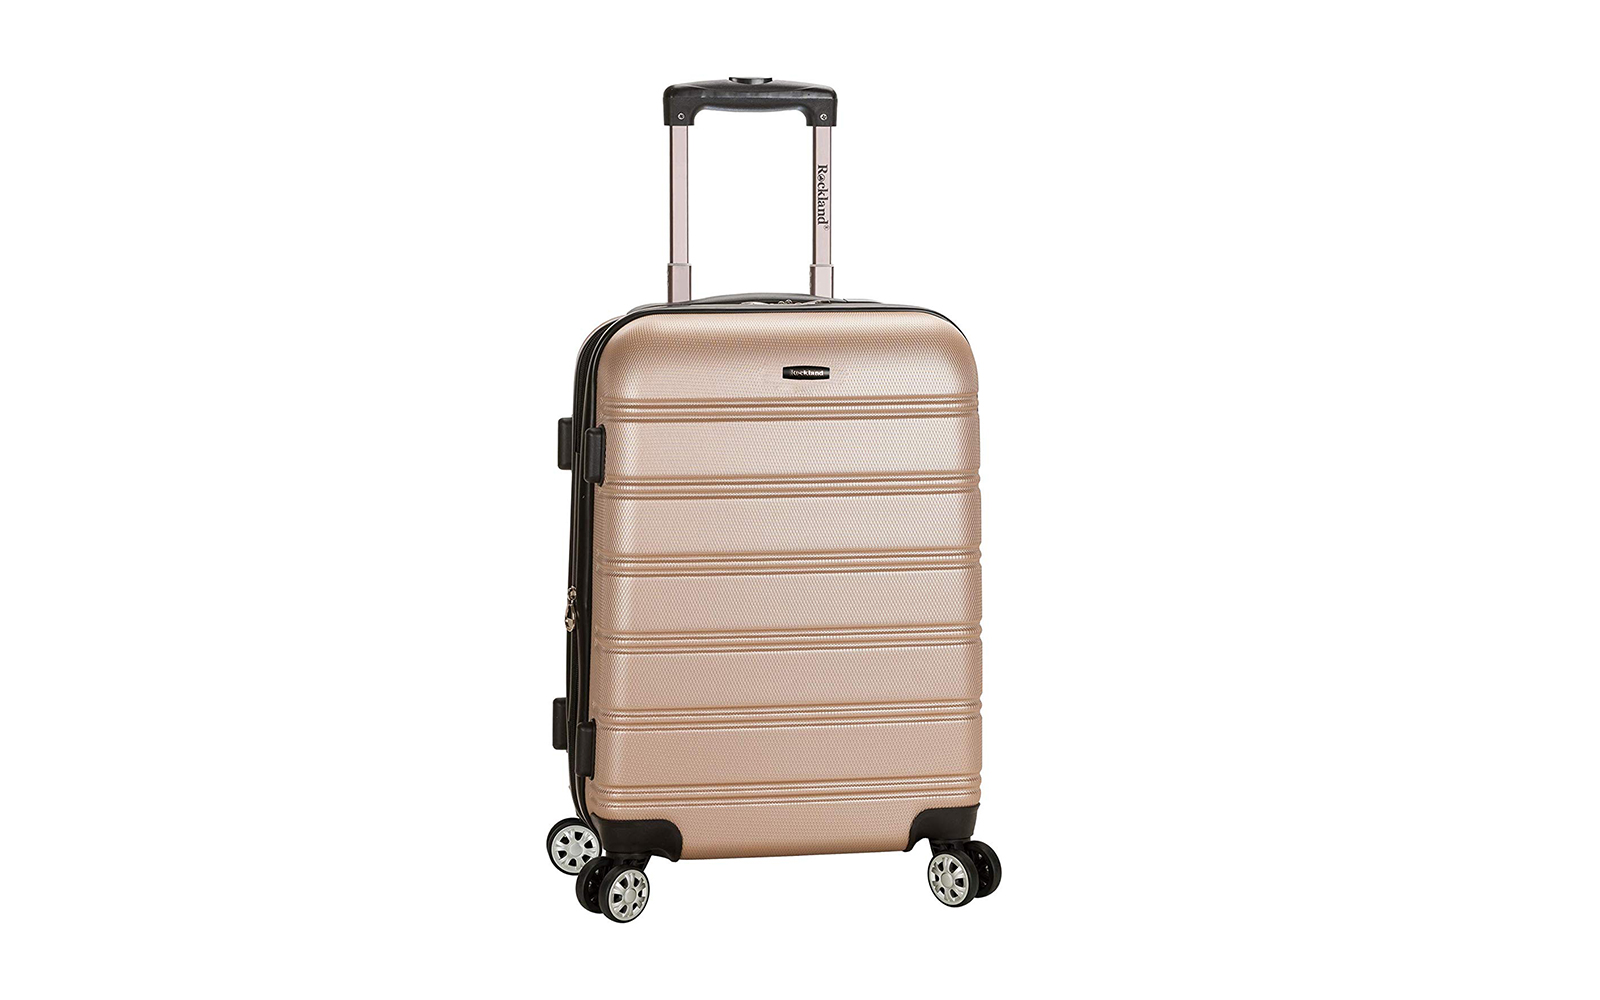 Rockland Luggage Melbourne 20 Inch Expandable Carry On, Champagne